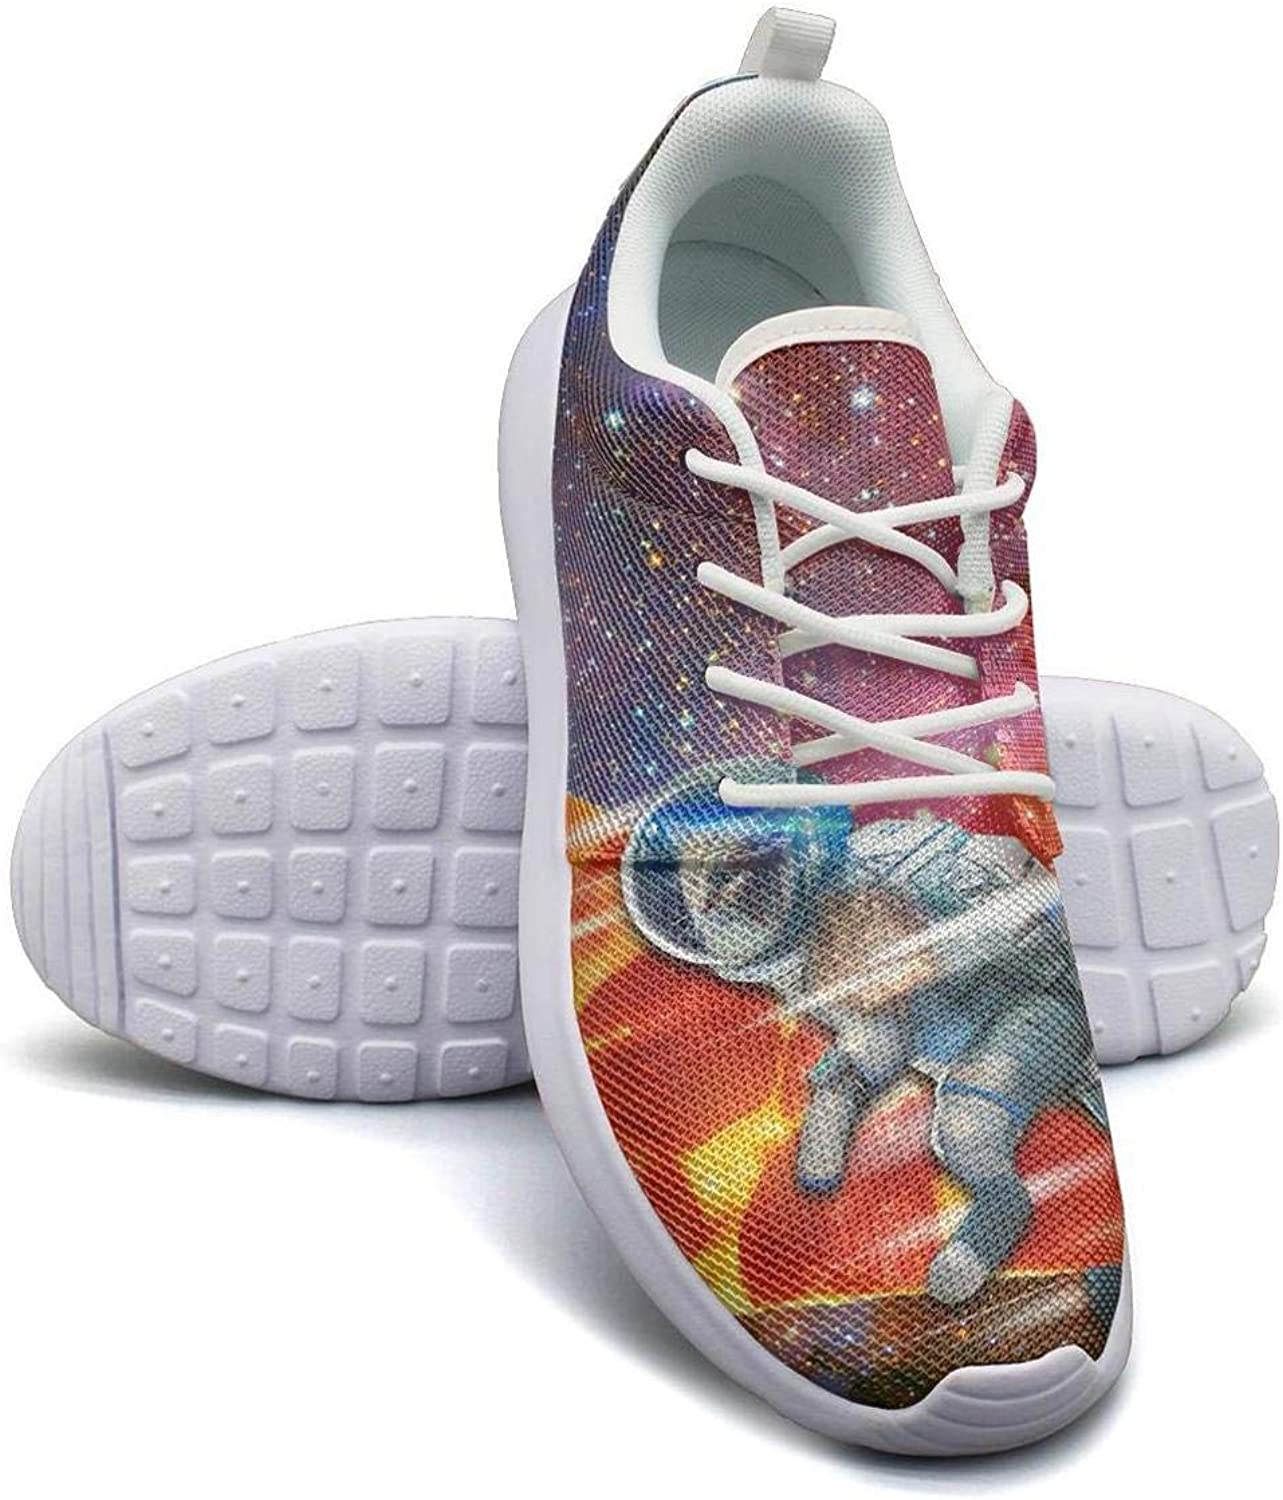 Galaxy Space Cat Protect pizza Boy Sneakers for Men Fashion Breathable Casual Shoes